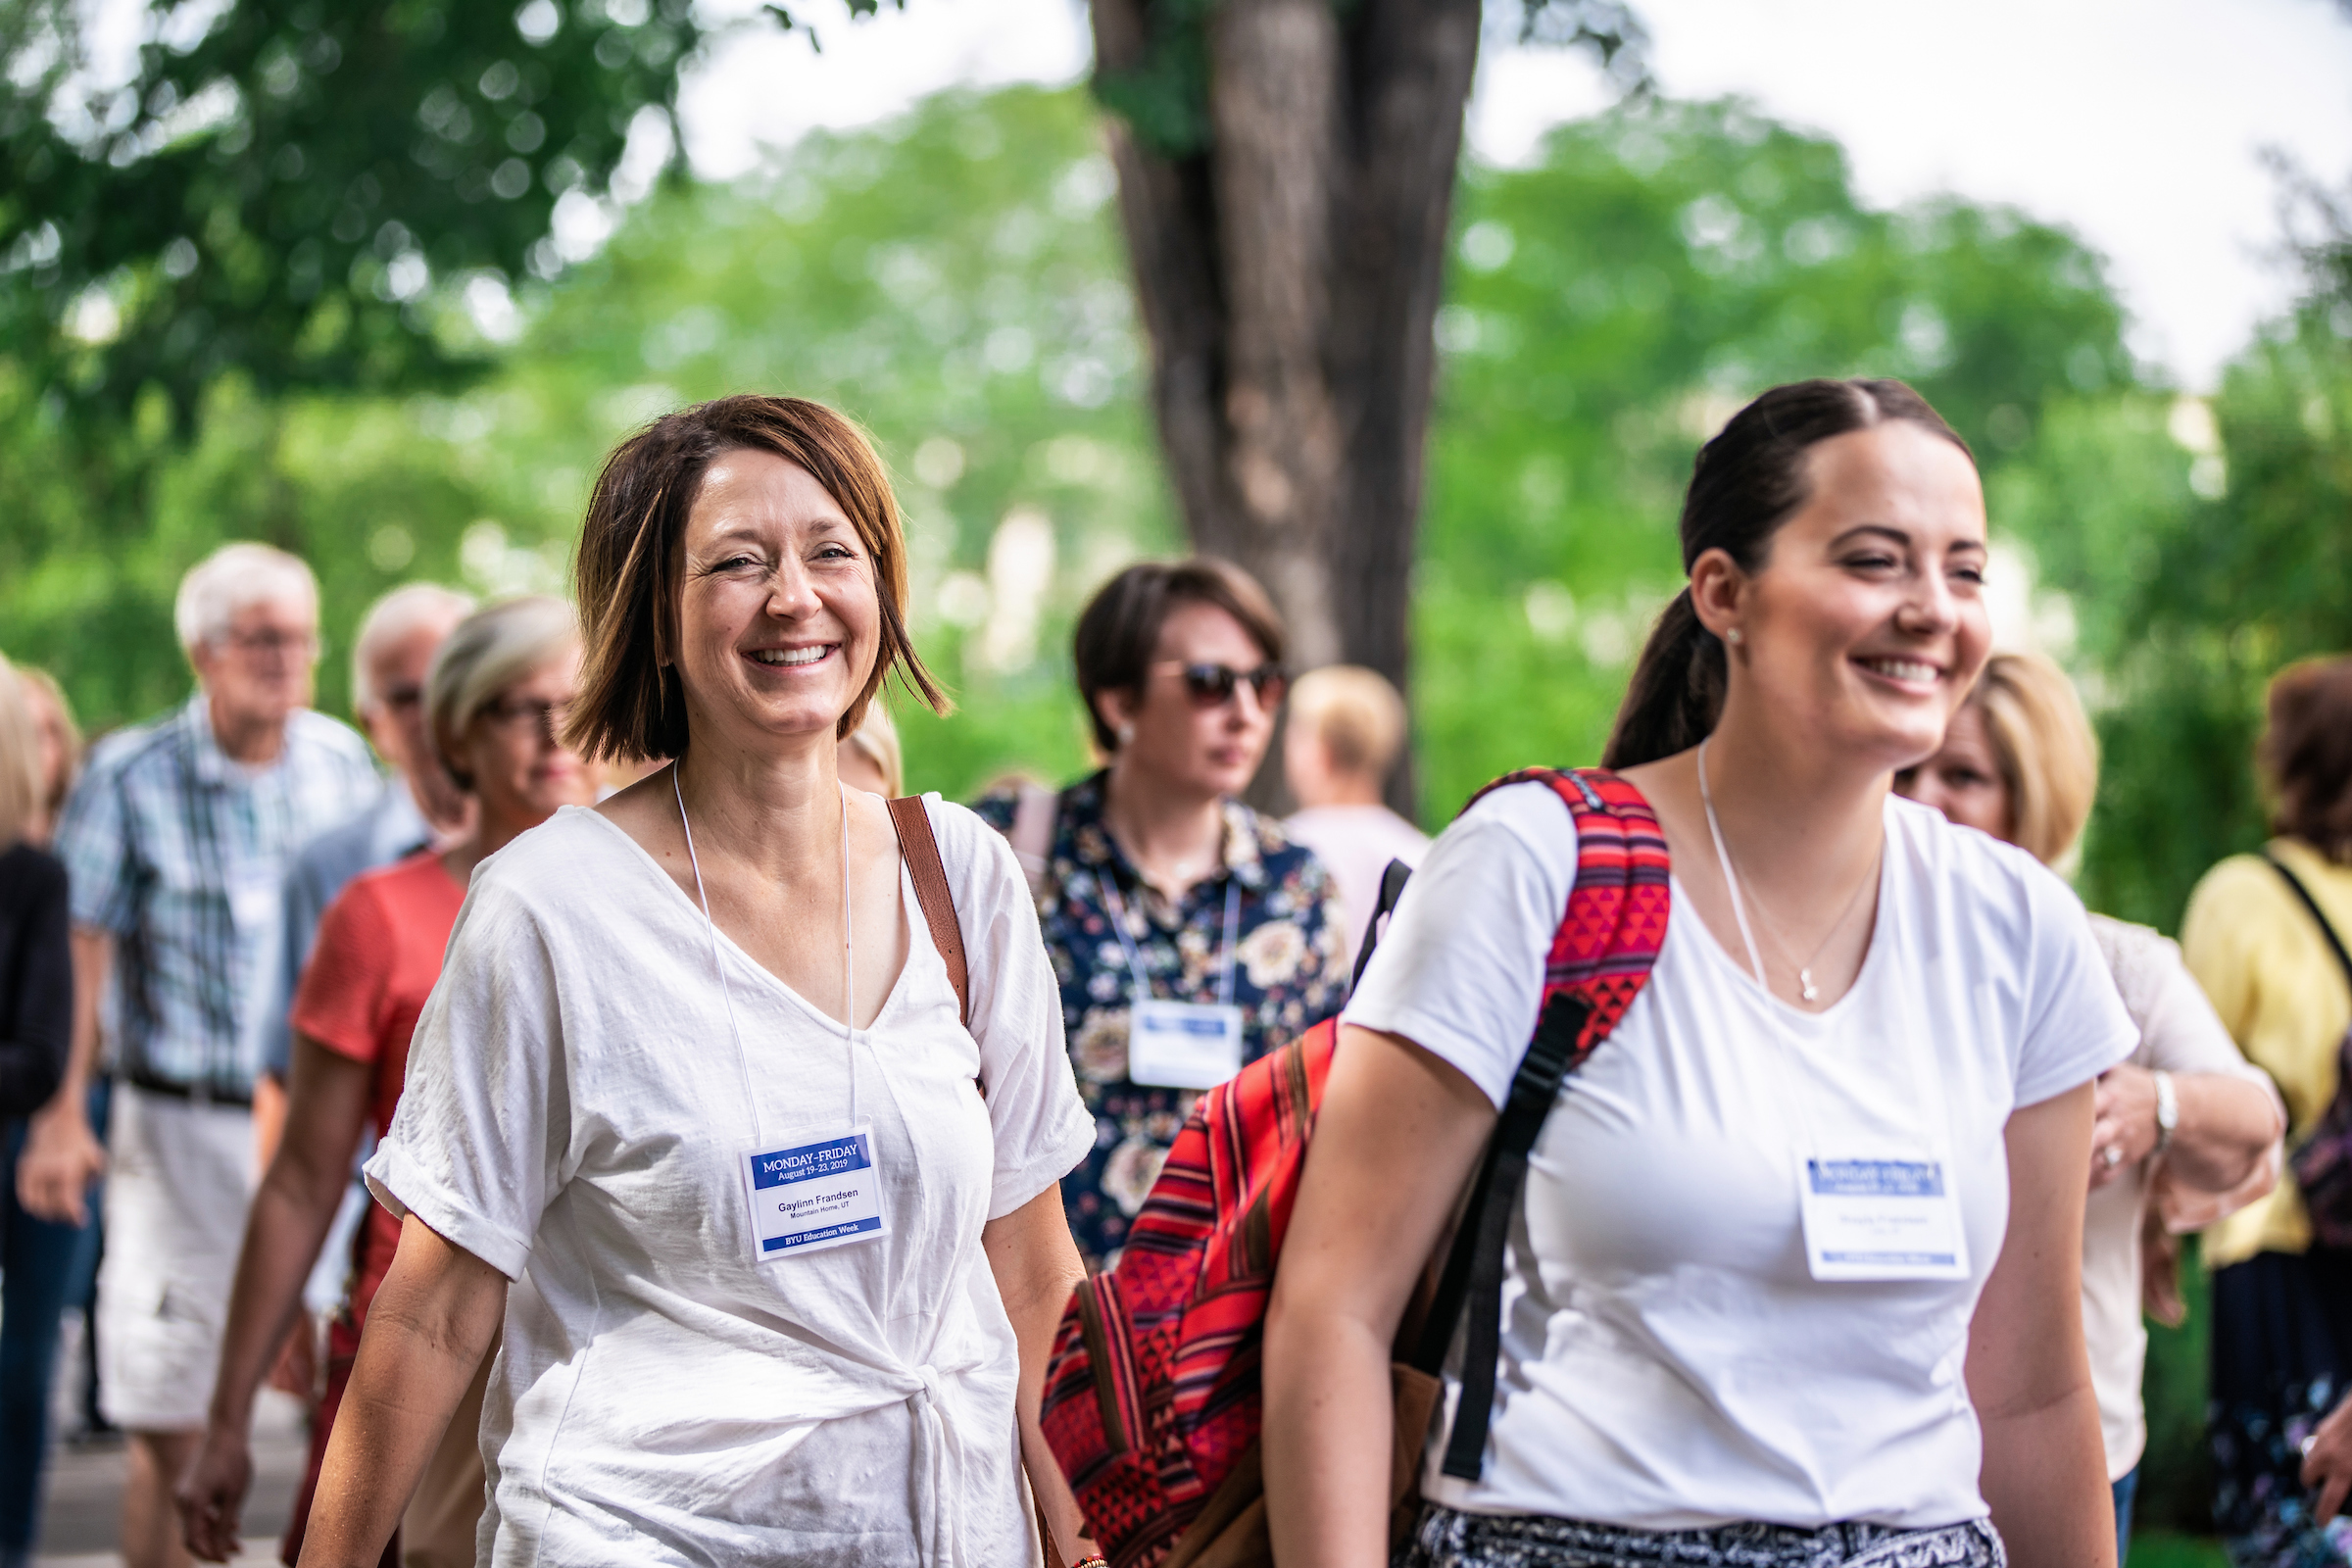 Attendees walk between sessions during BYU Education Week on Aug. 23, 2019, on the BYU campus in Provo, Utah. The annual event was held Aug. 19-23, 2019.